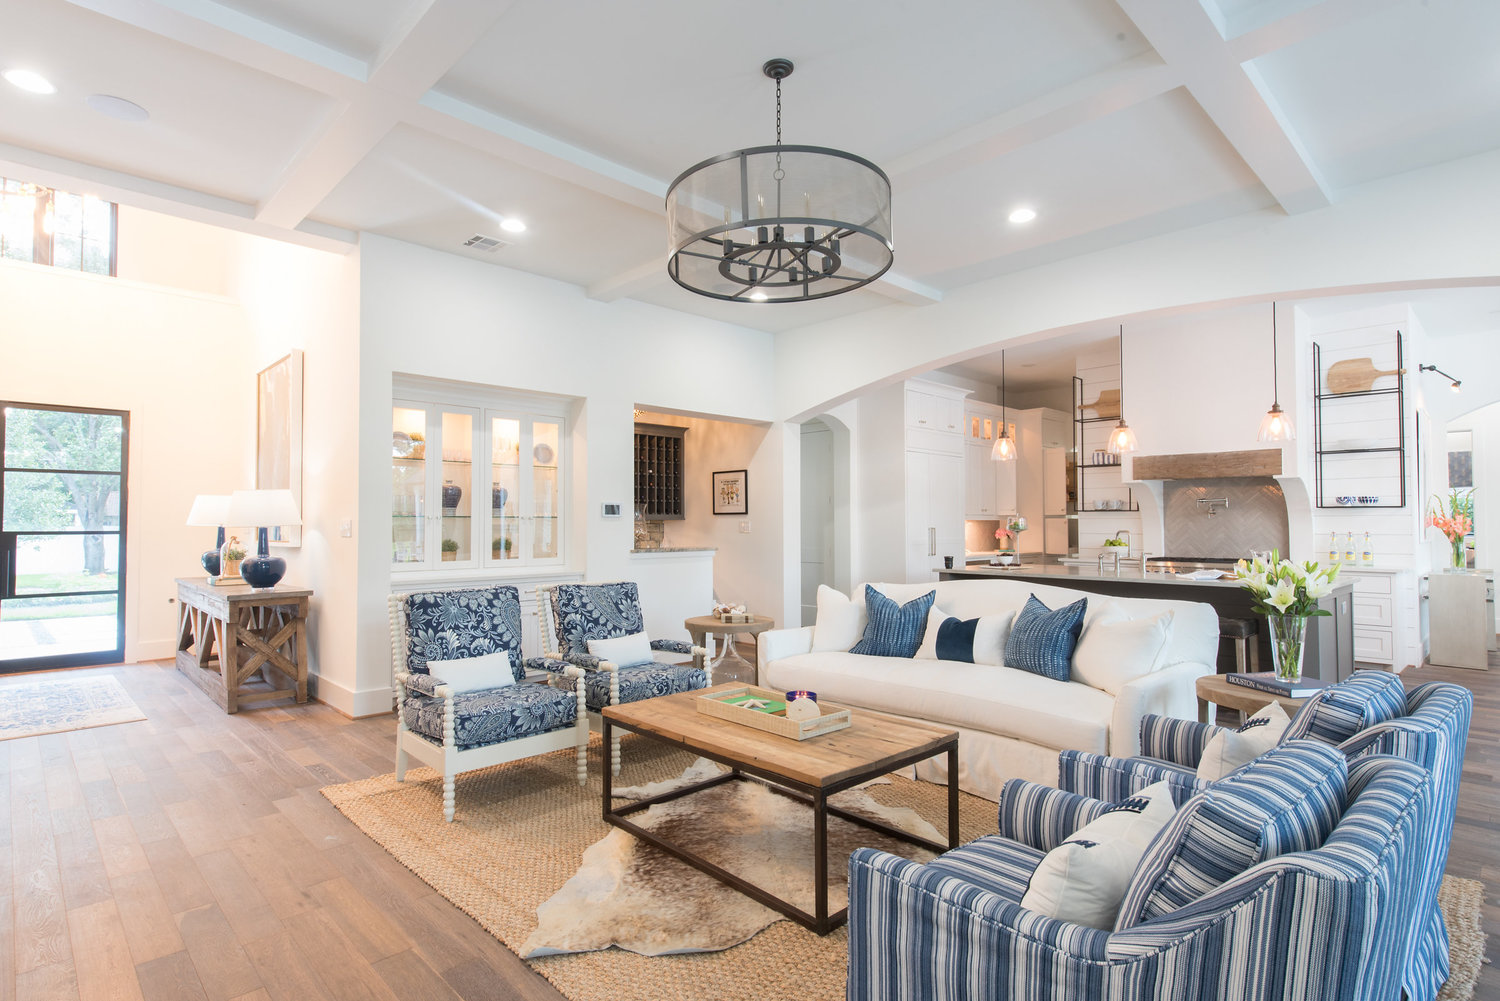 Duckworth interiors is an award winning and multi disciplinary interior design house from whole house interior projects to new construction selections